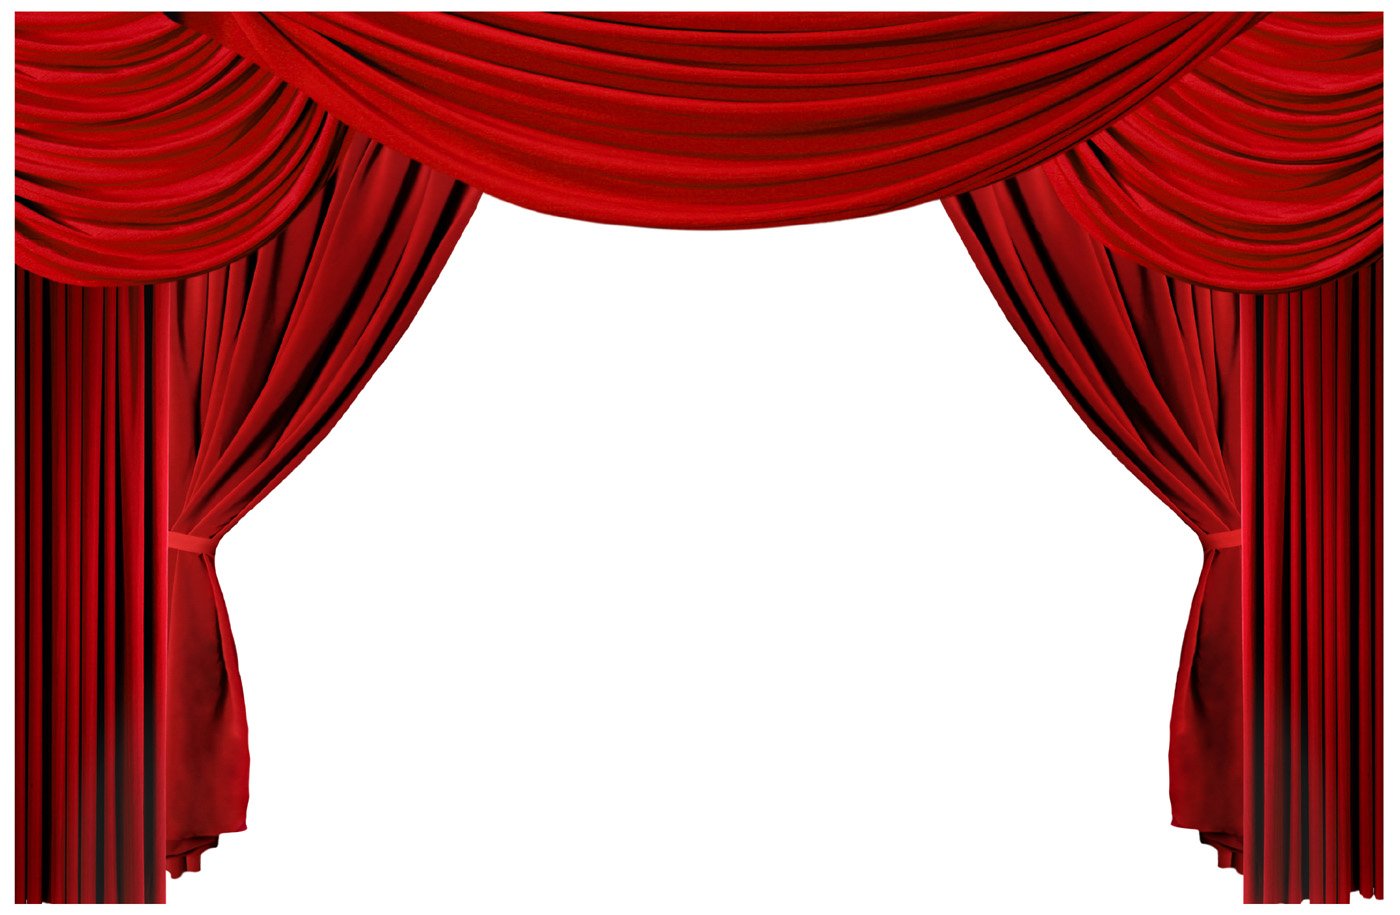 red curtains theatre - photo #1